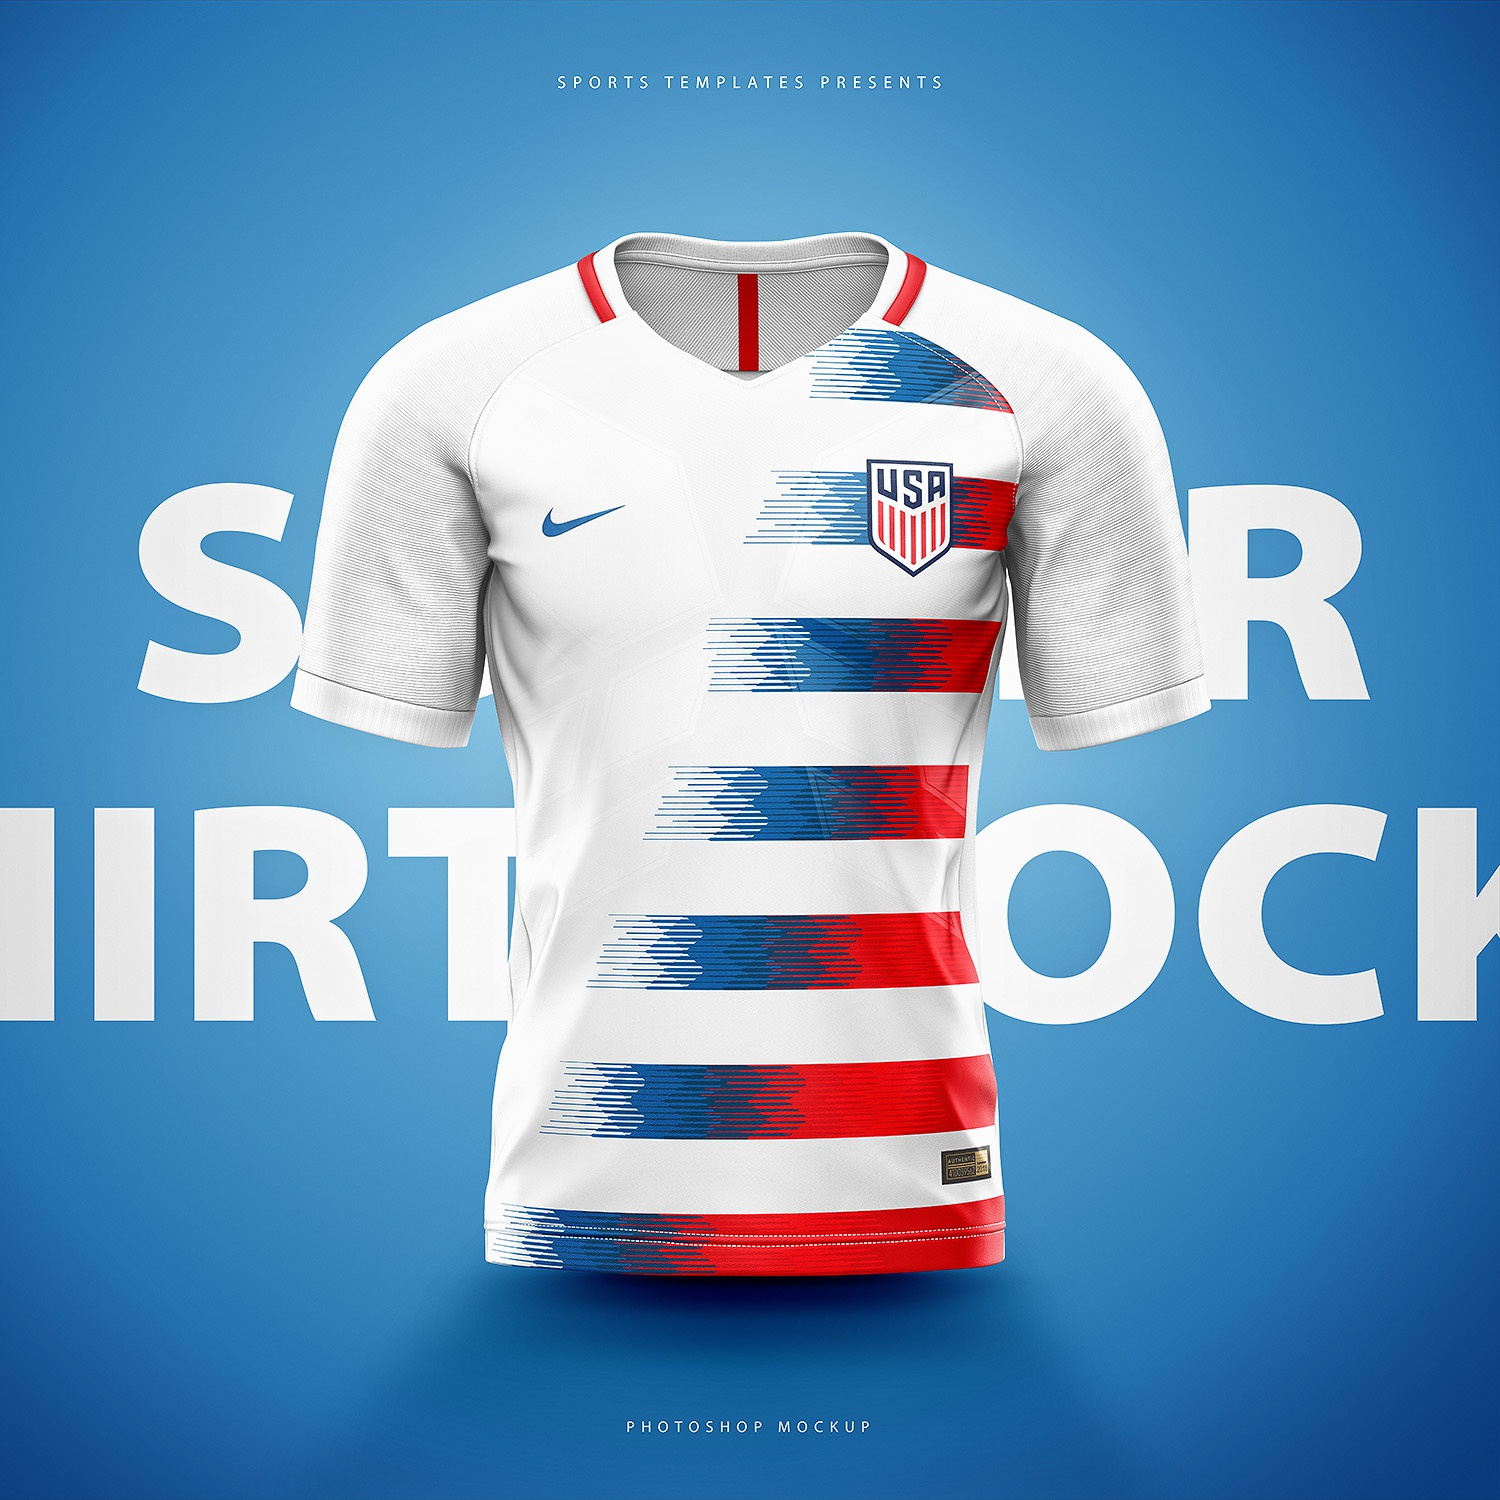 8dfc03c6 United states soccer football world cup 2018 shirt nike aeroswift photoshop  template back.